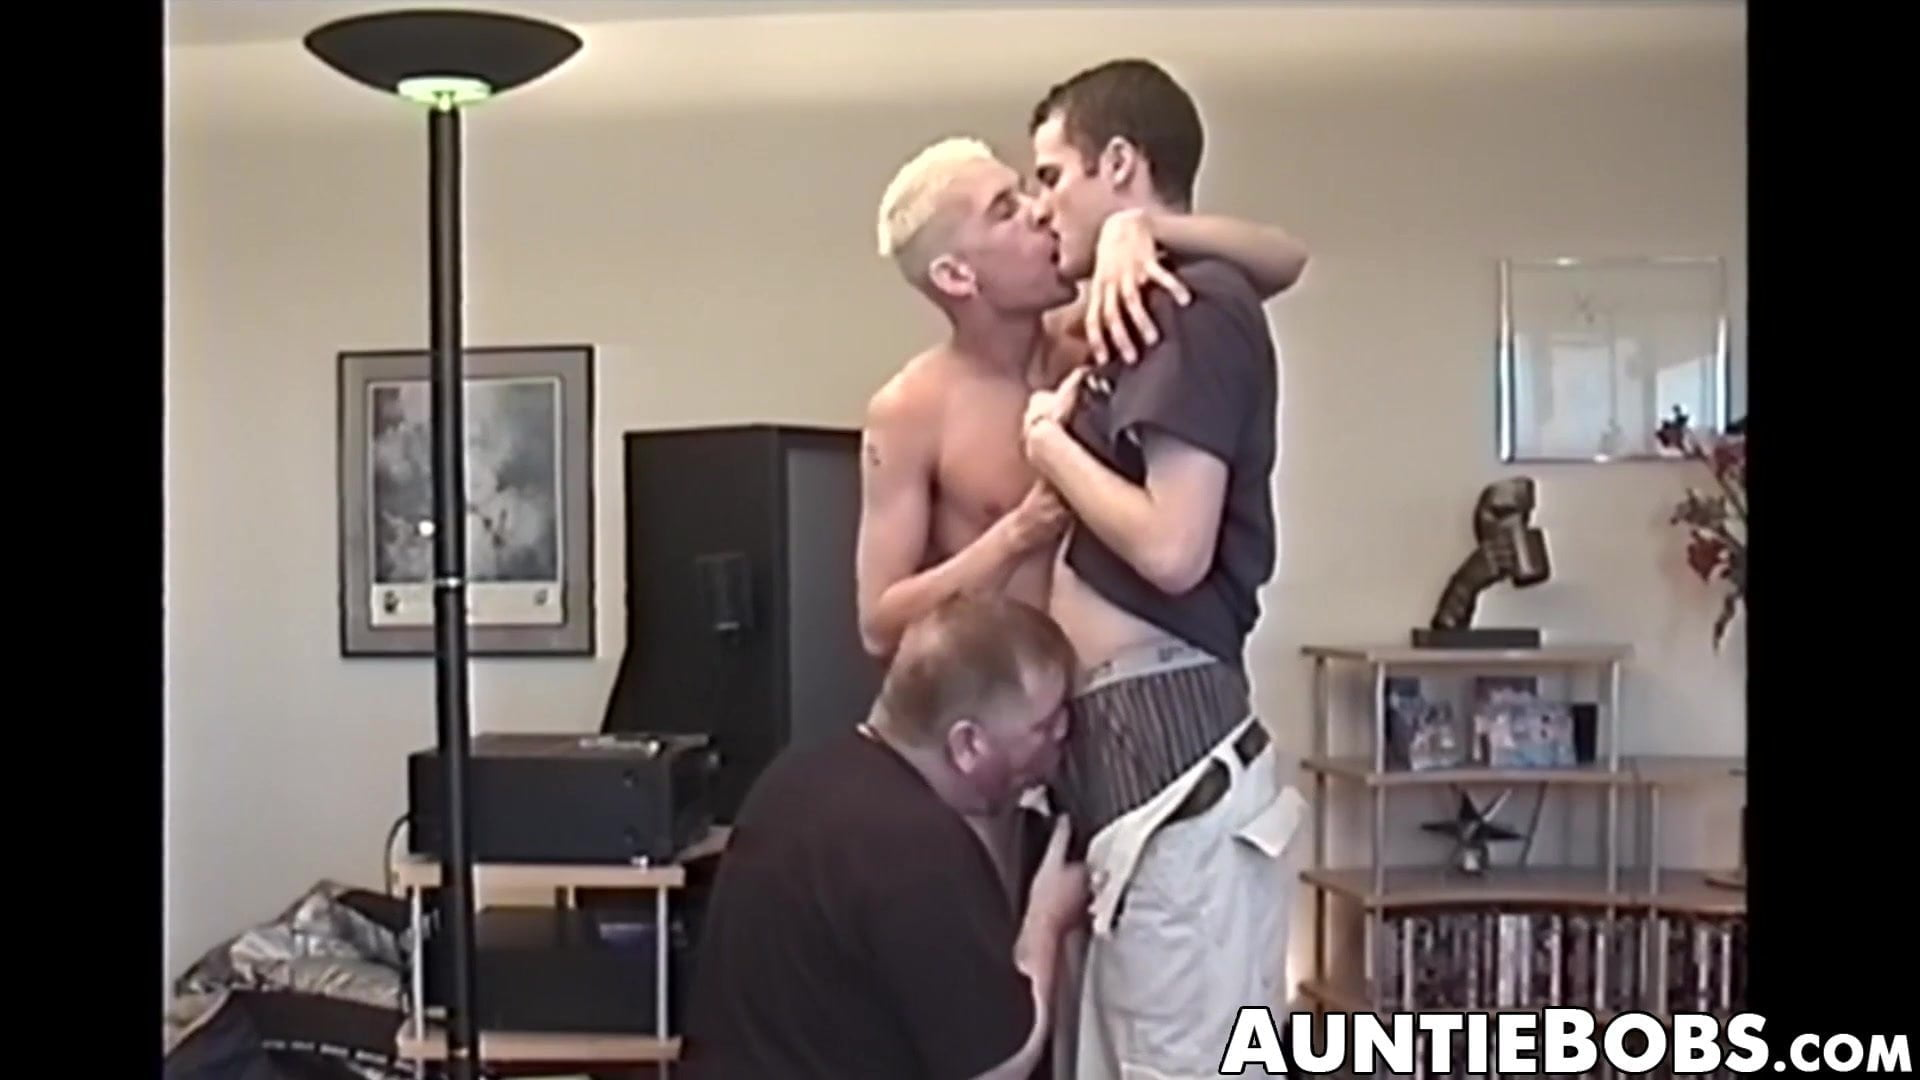 Twinks determine to have some enjoyable by recording a foursome